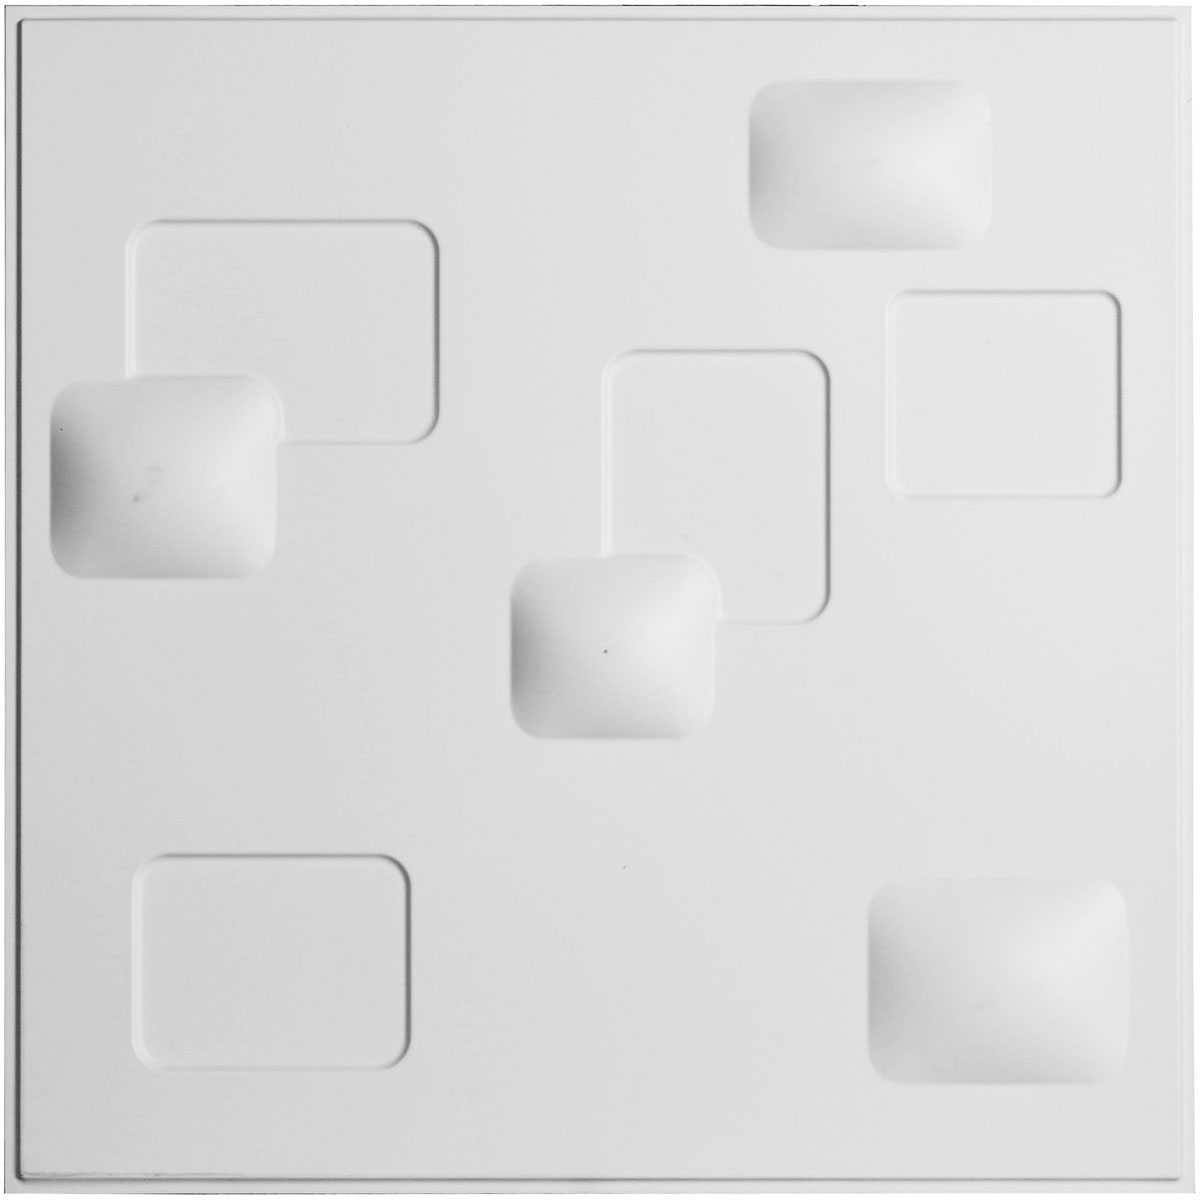 19 5/8'W x 19 5/8'H Avila EnduraWall Decorative 3D Wall Panel, White